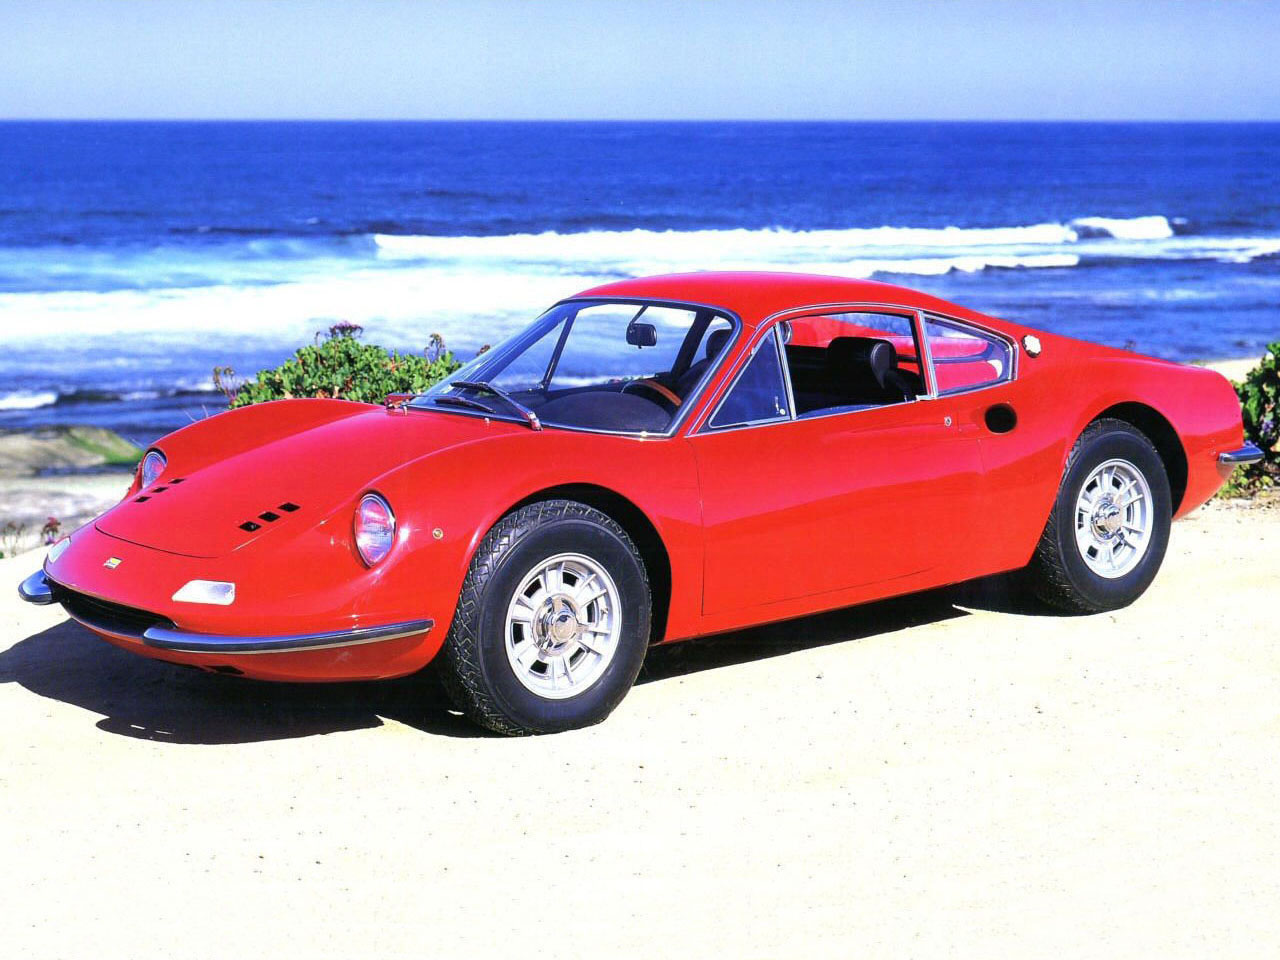 Our list of sexy cars includes the 1968 Ferrari Dino 206GT